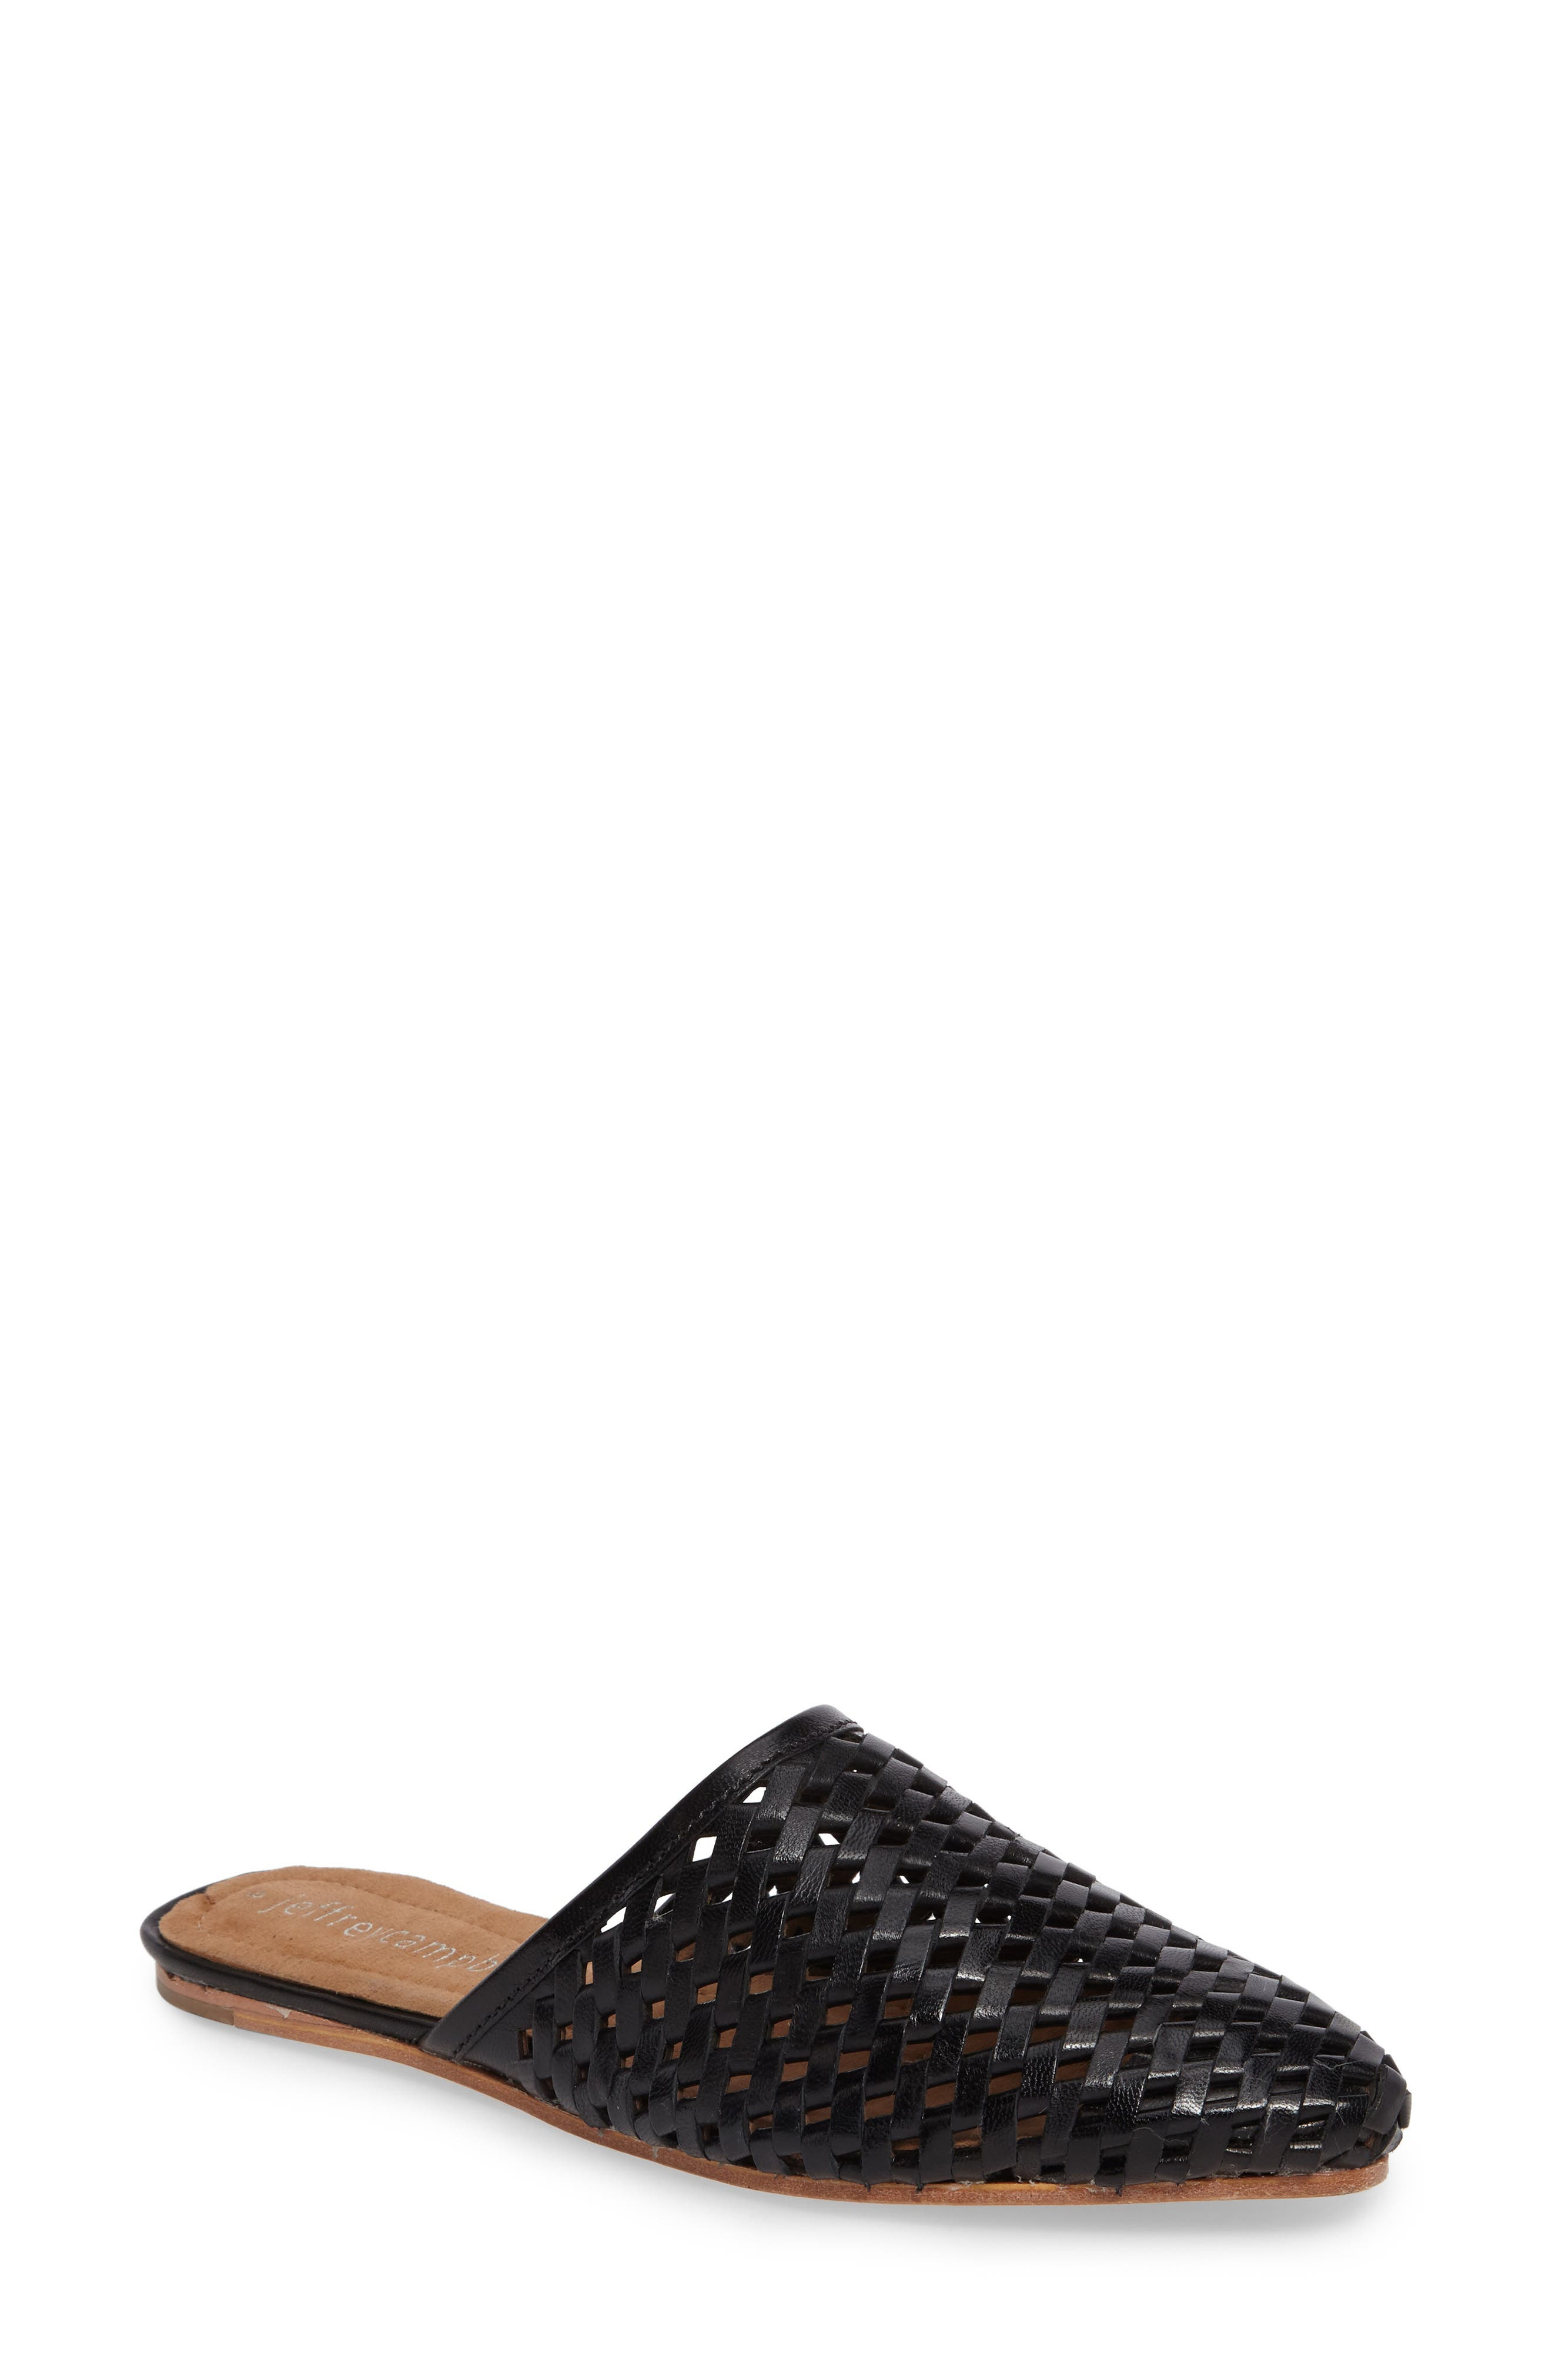 Doshi Woven Mule,                         Main,                         color, Black Leather